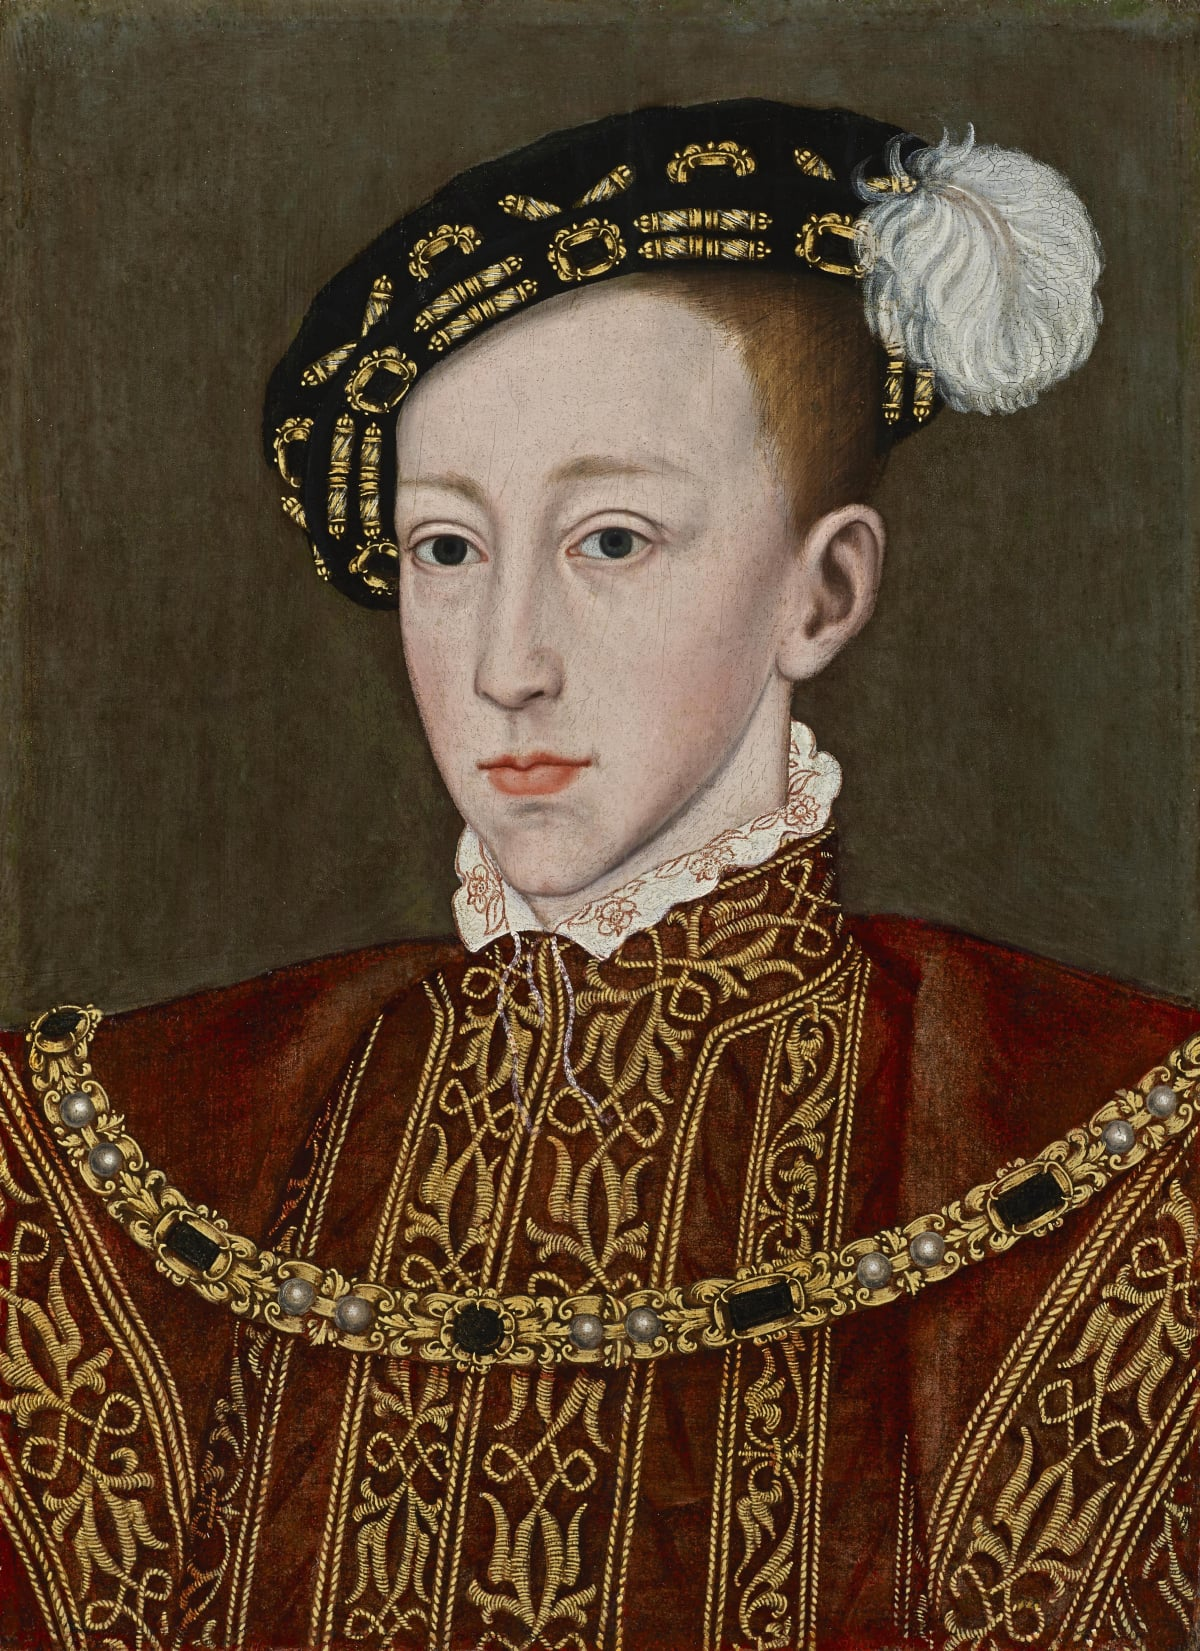 Studio of William Scrots (c. 1537 – 1553) Edward VI of England (1531 – 1553), circa 1550 Oil on panel 17 ¾ x 12 ¾ in. (44.9 x 32.4 cm.)